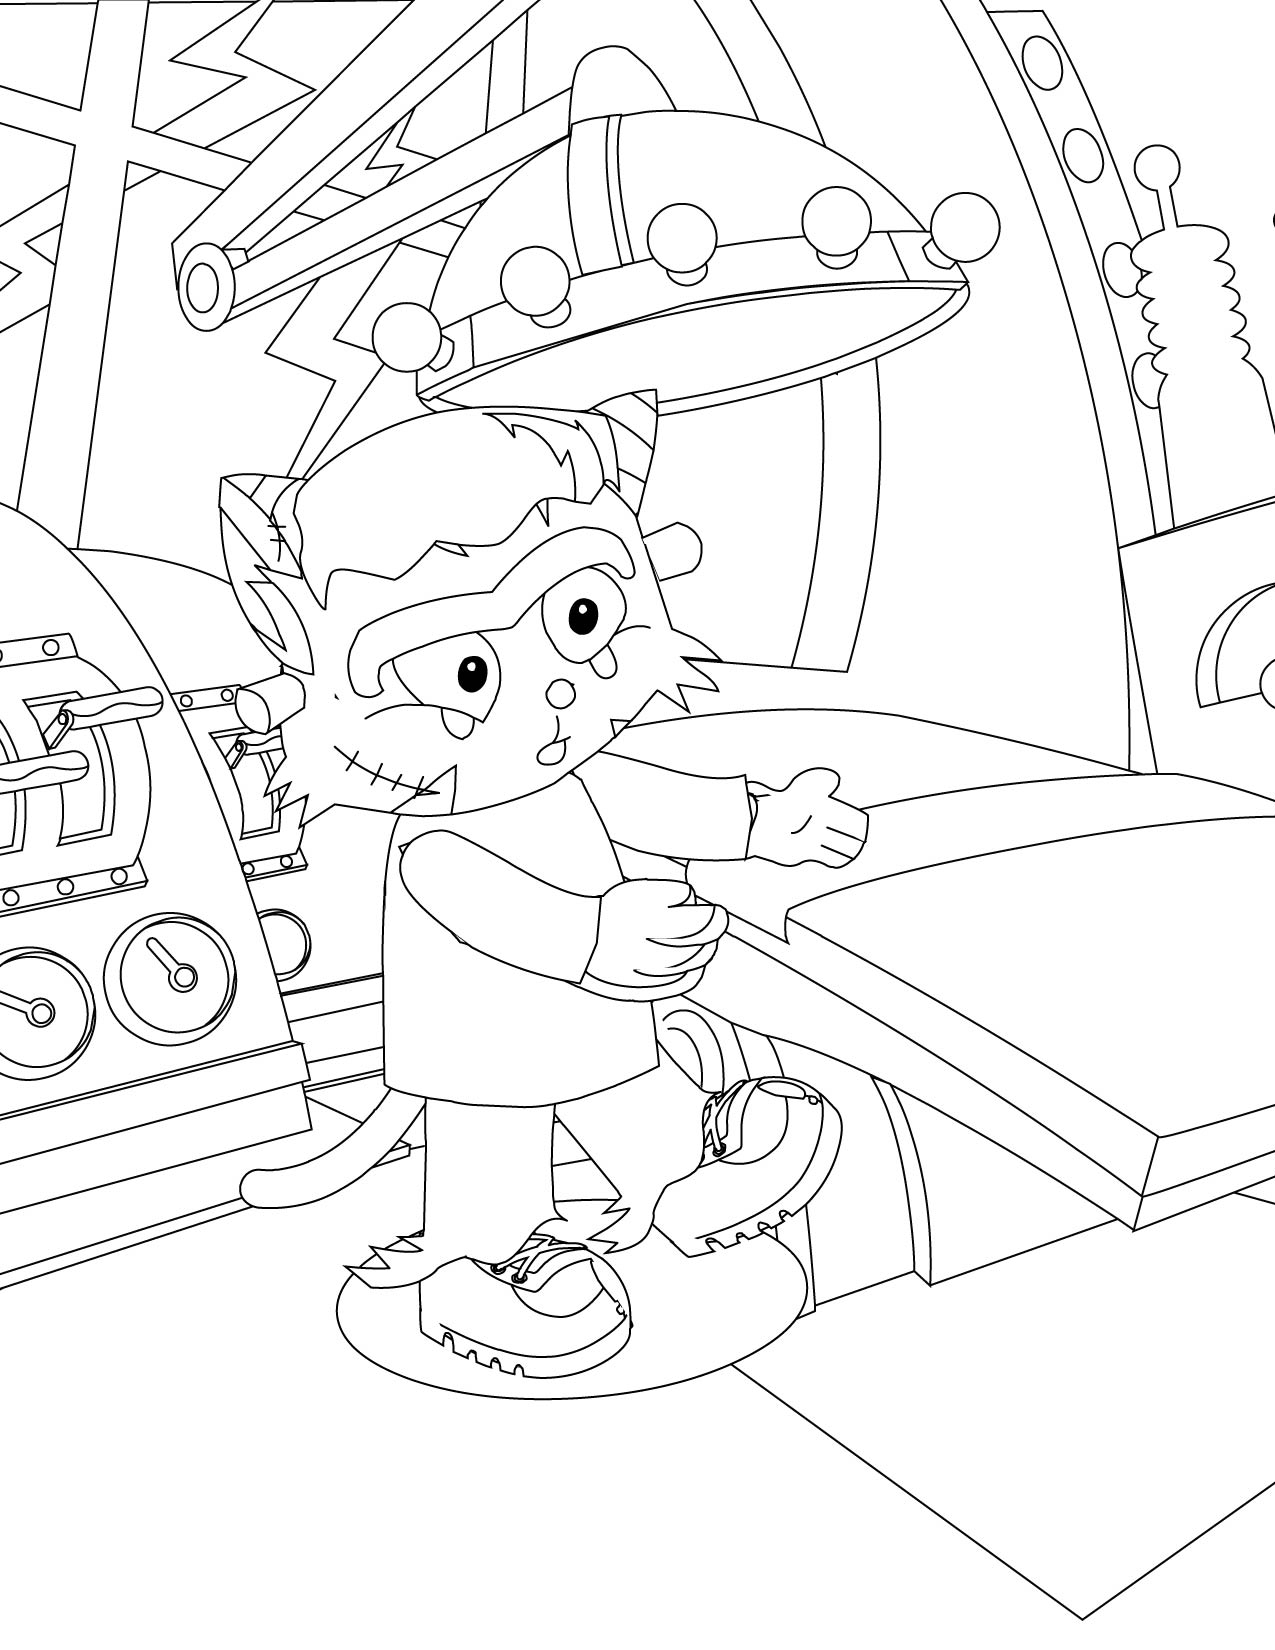 primary games coloring pages - photo#49